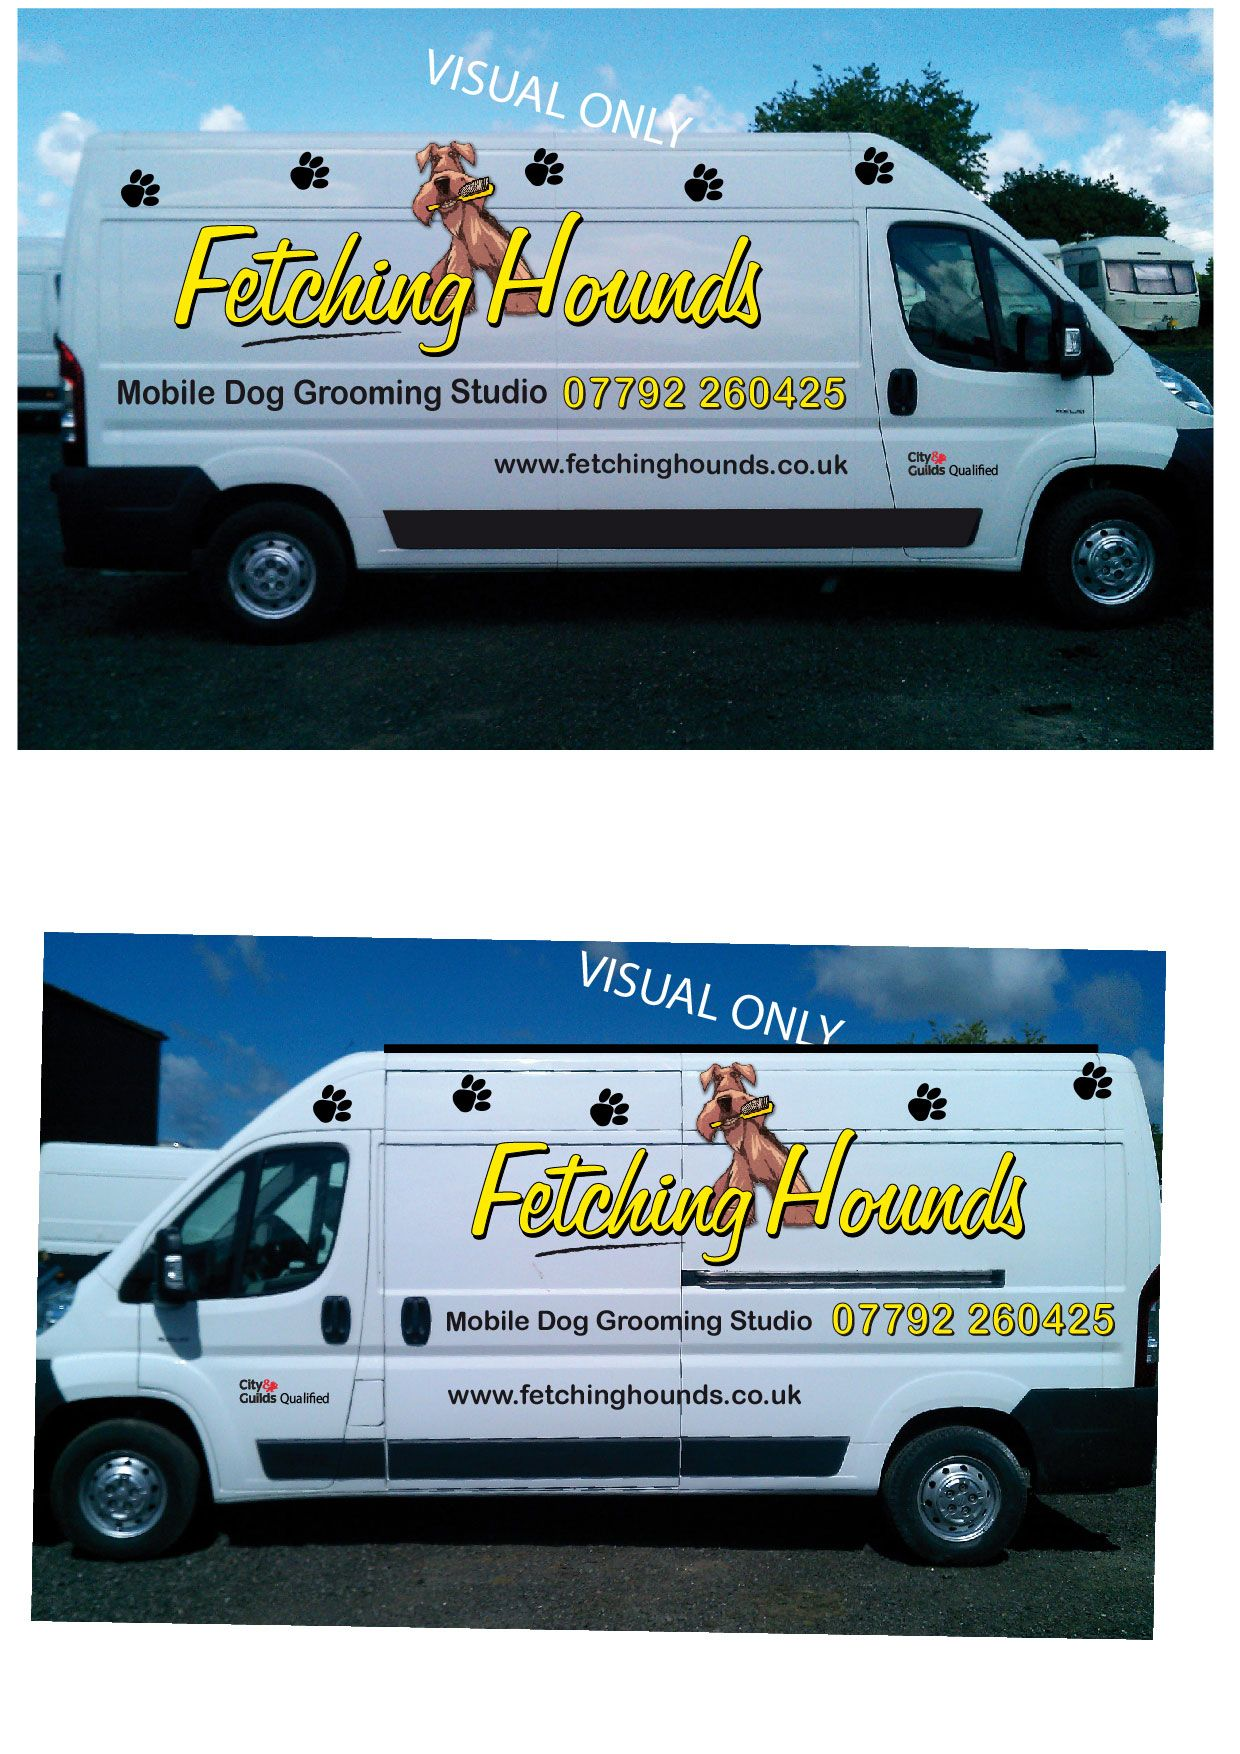 Fetching Hounds Mobile Dog Grooming Dog Grooming Mobile Pet Grooming